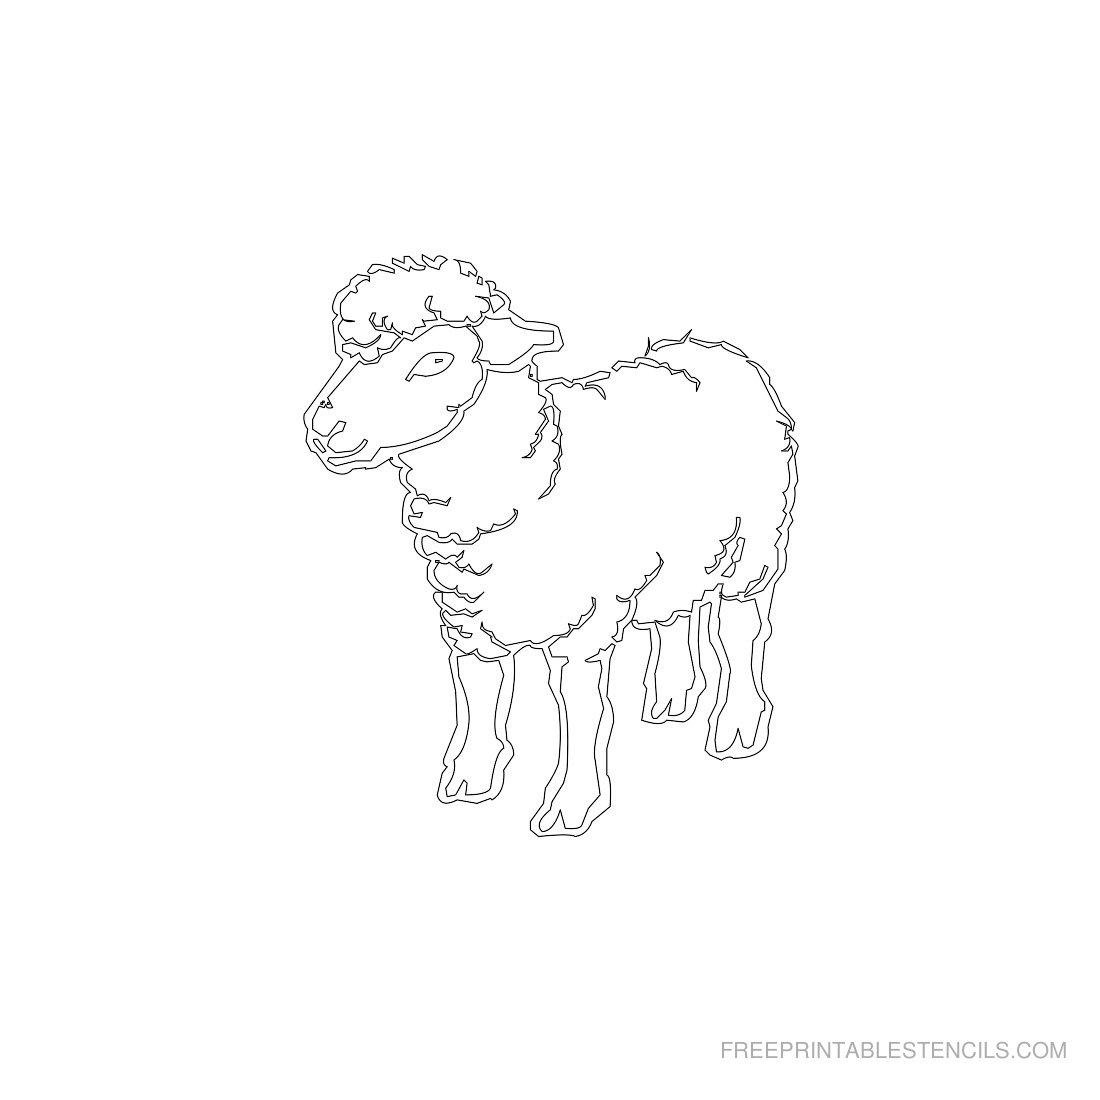 Free Printable Animal Stencil Sheep